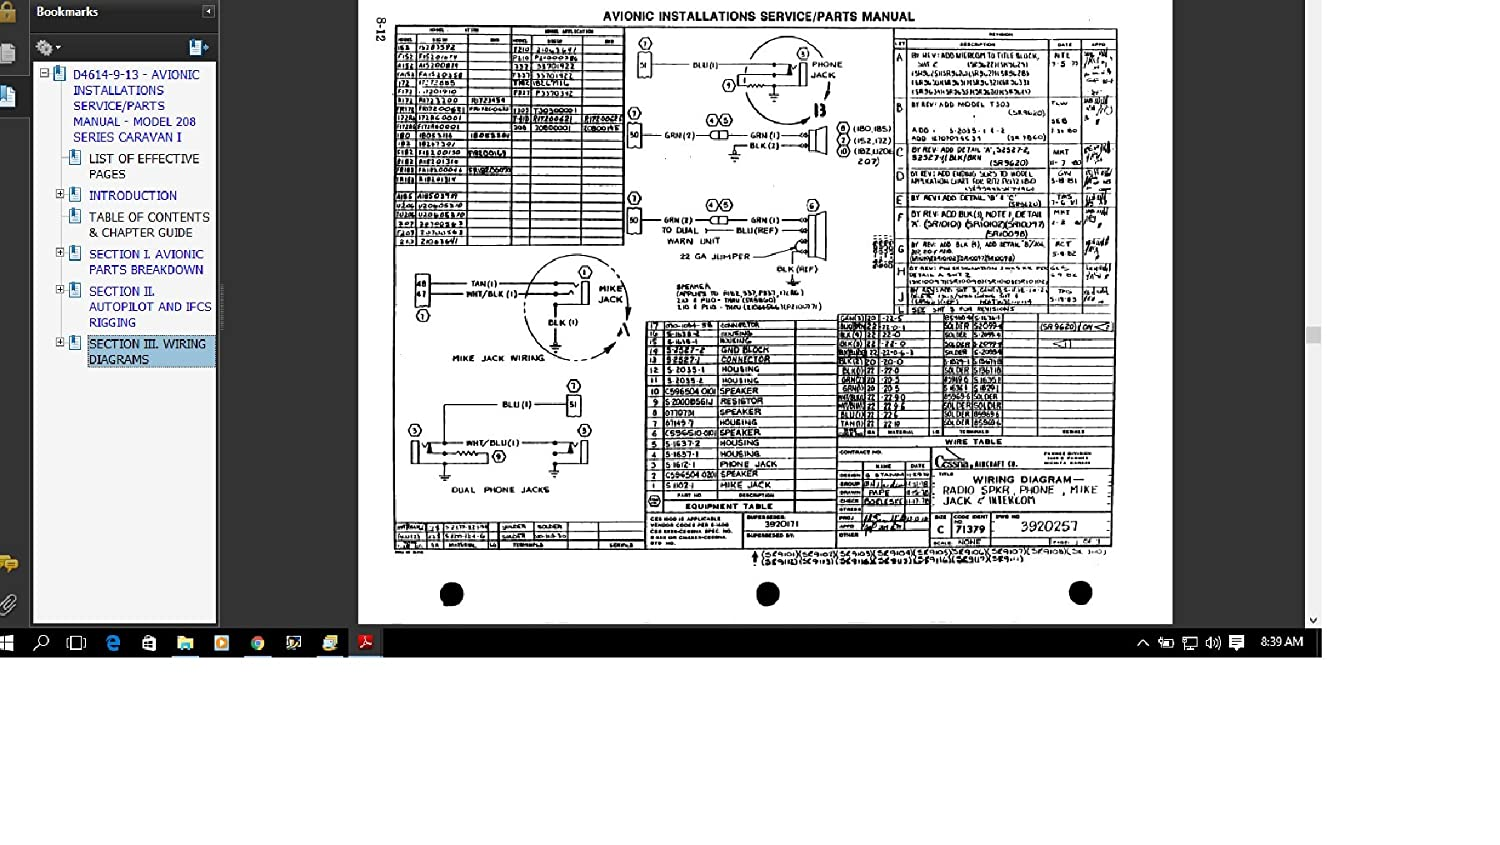 Cessna 208 Caravan Avionics Service Parts Manual Typical Wiring Diagram Library Everything Else